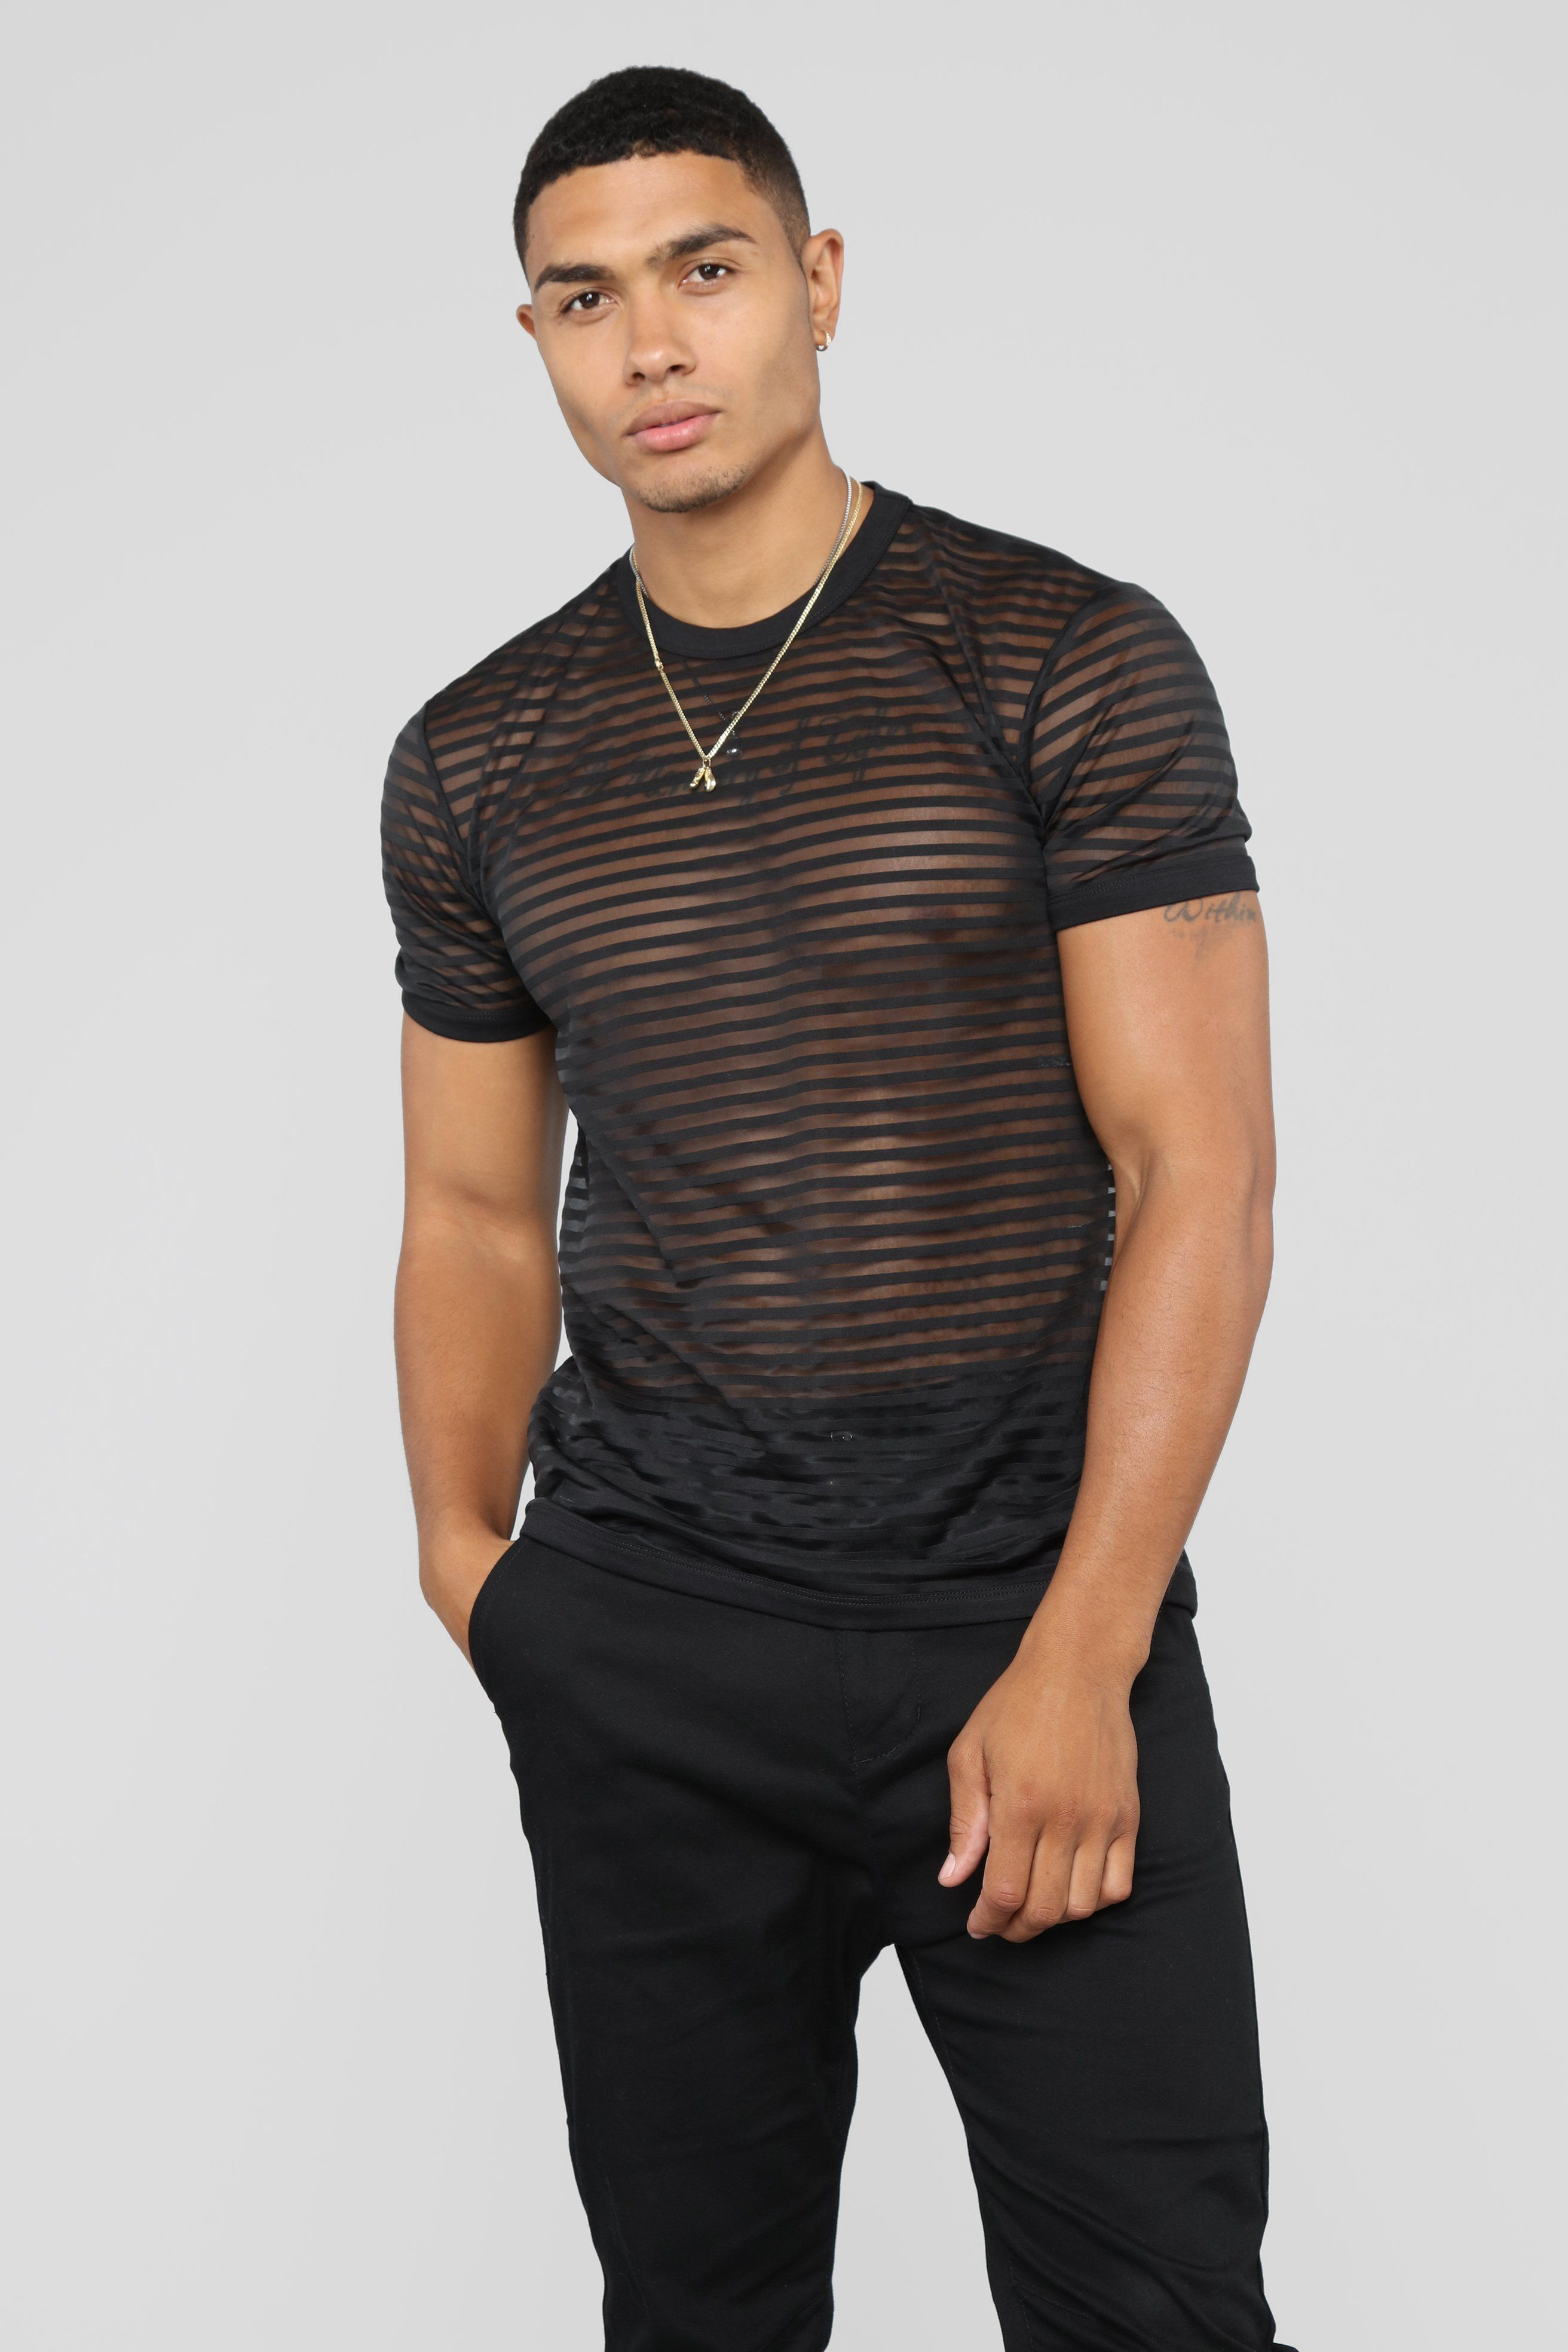 Mens PU See Through Mesh Short Sleeves Casual Slim Fit T-shirt Tee Top Costume